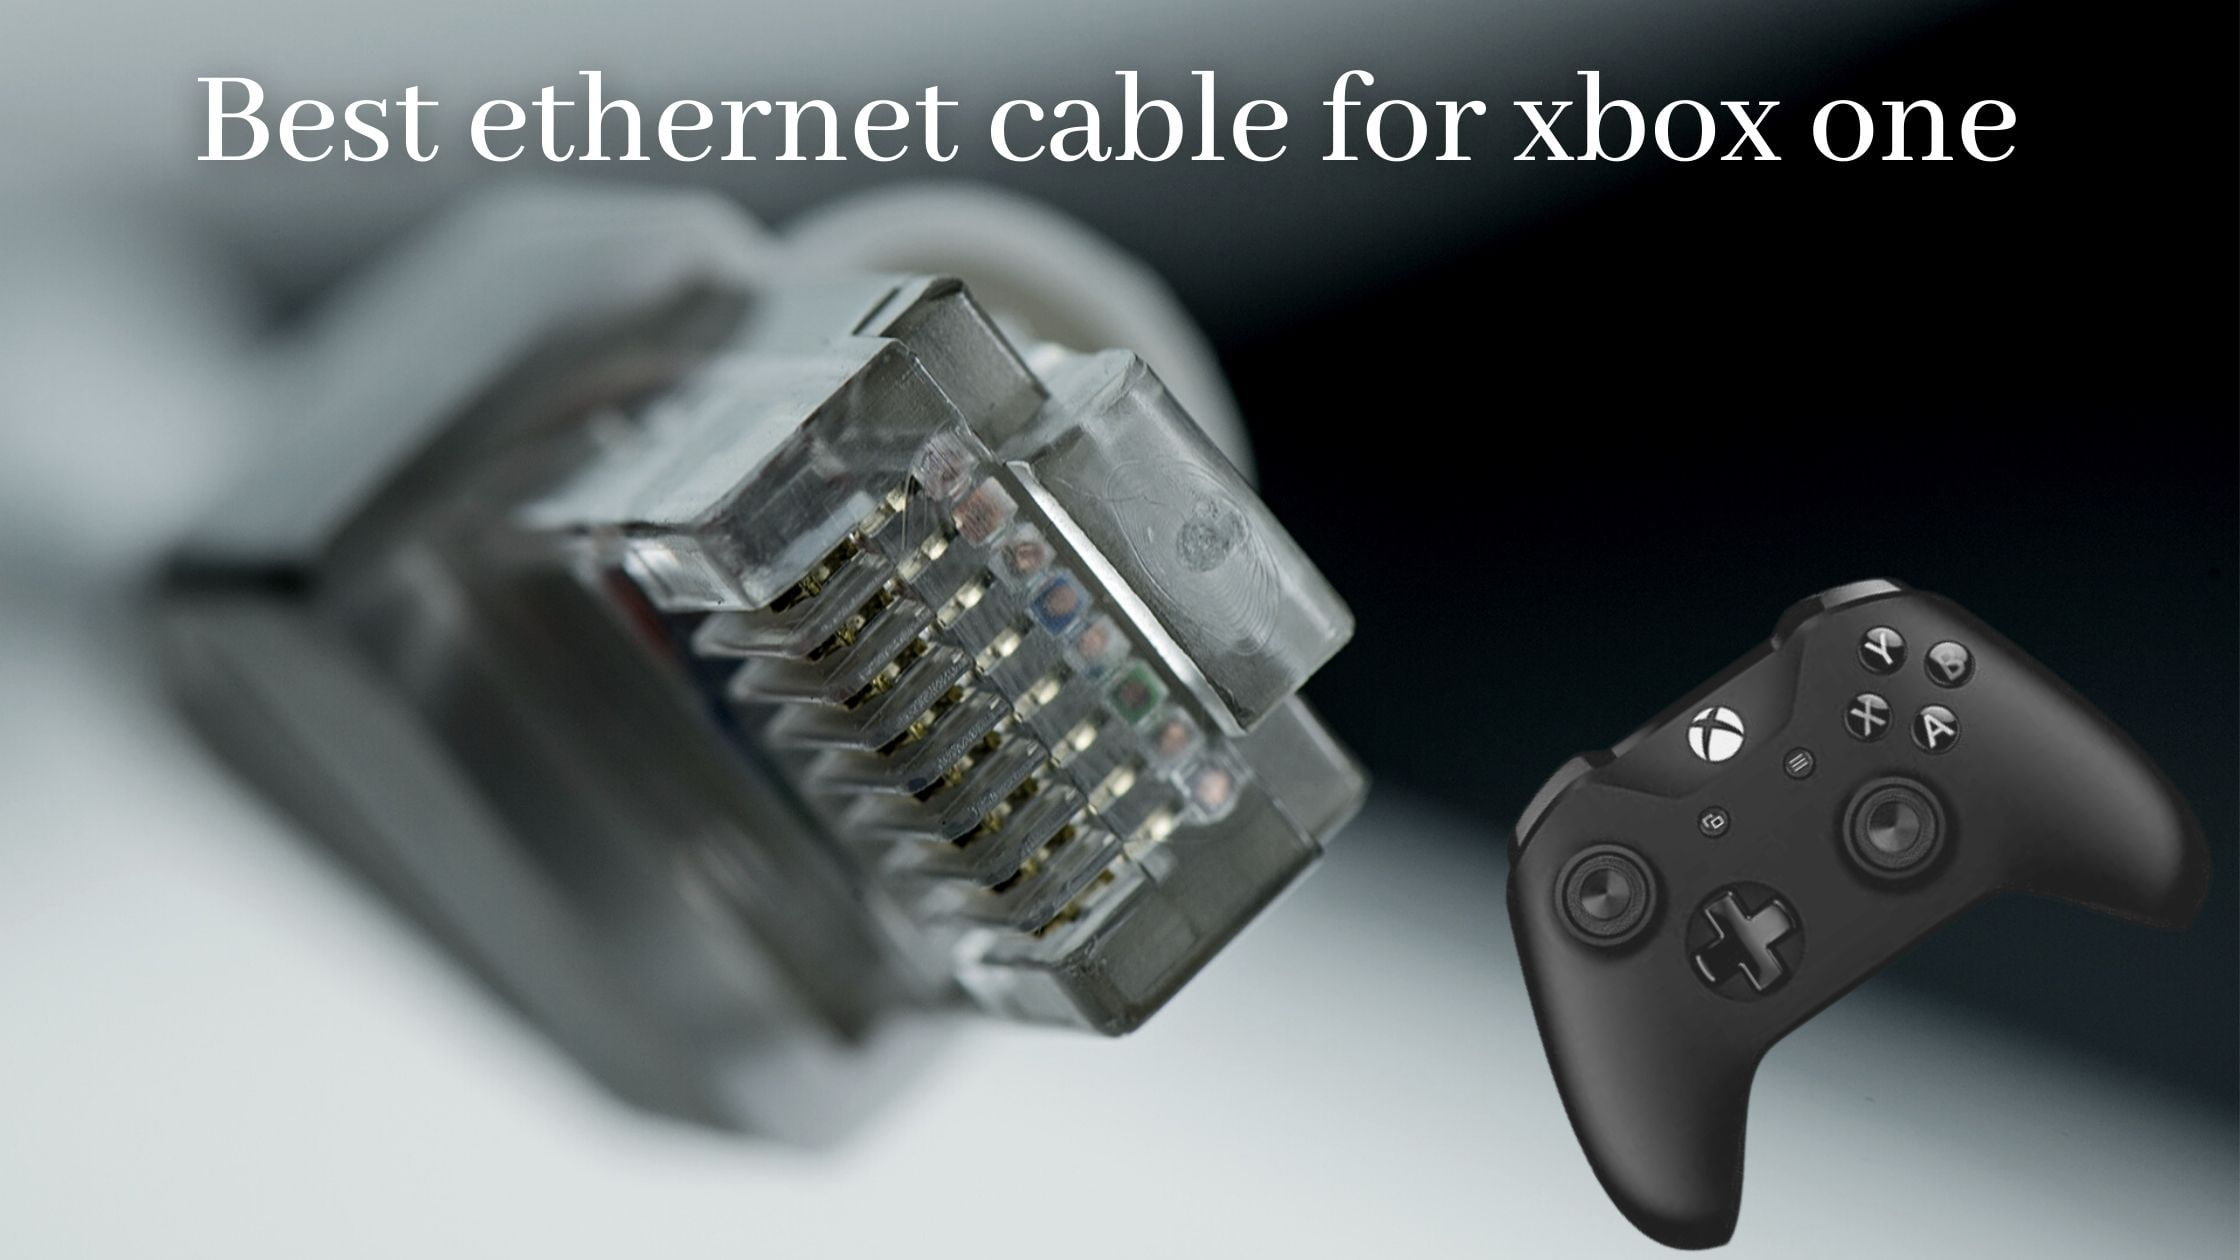 Best ethernet cable for xbox one